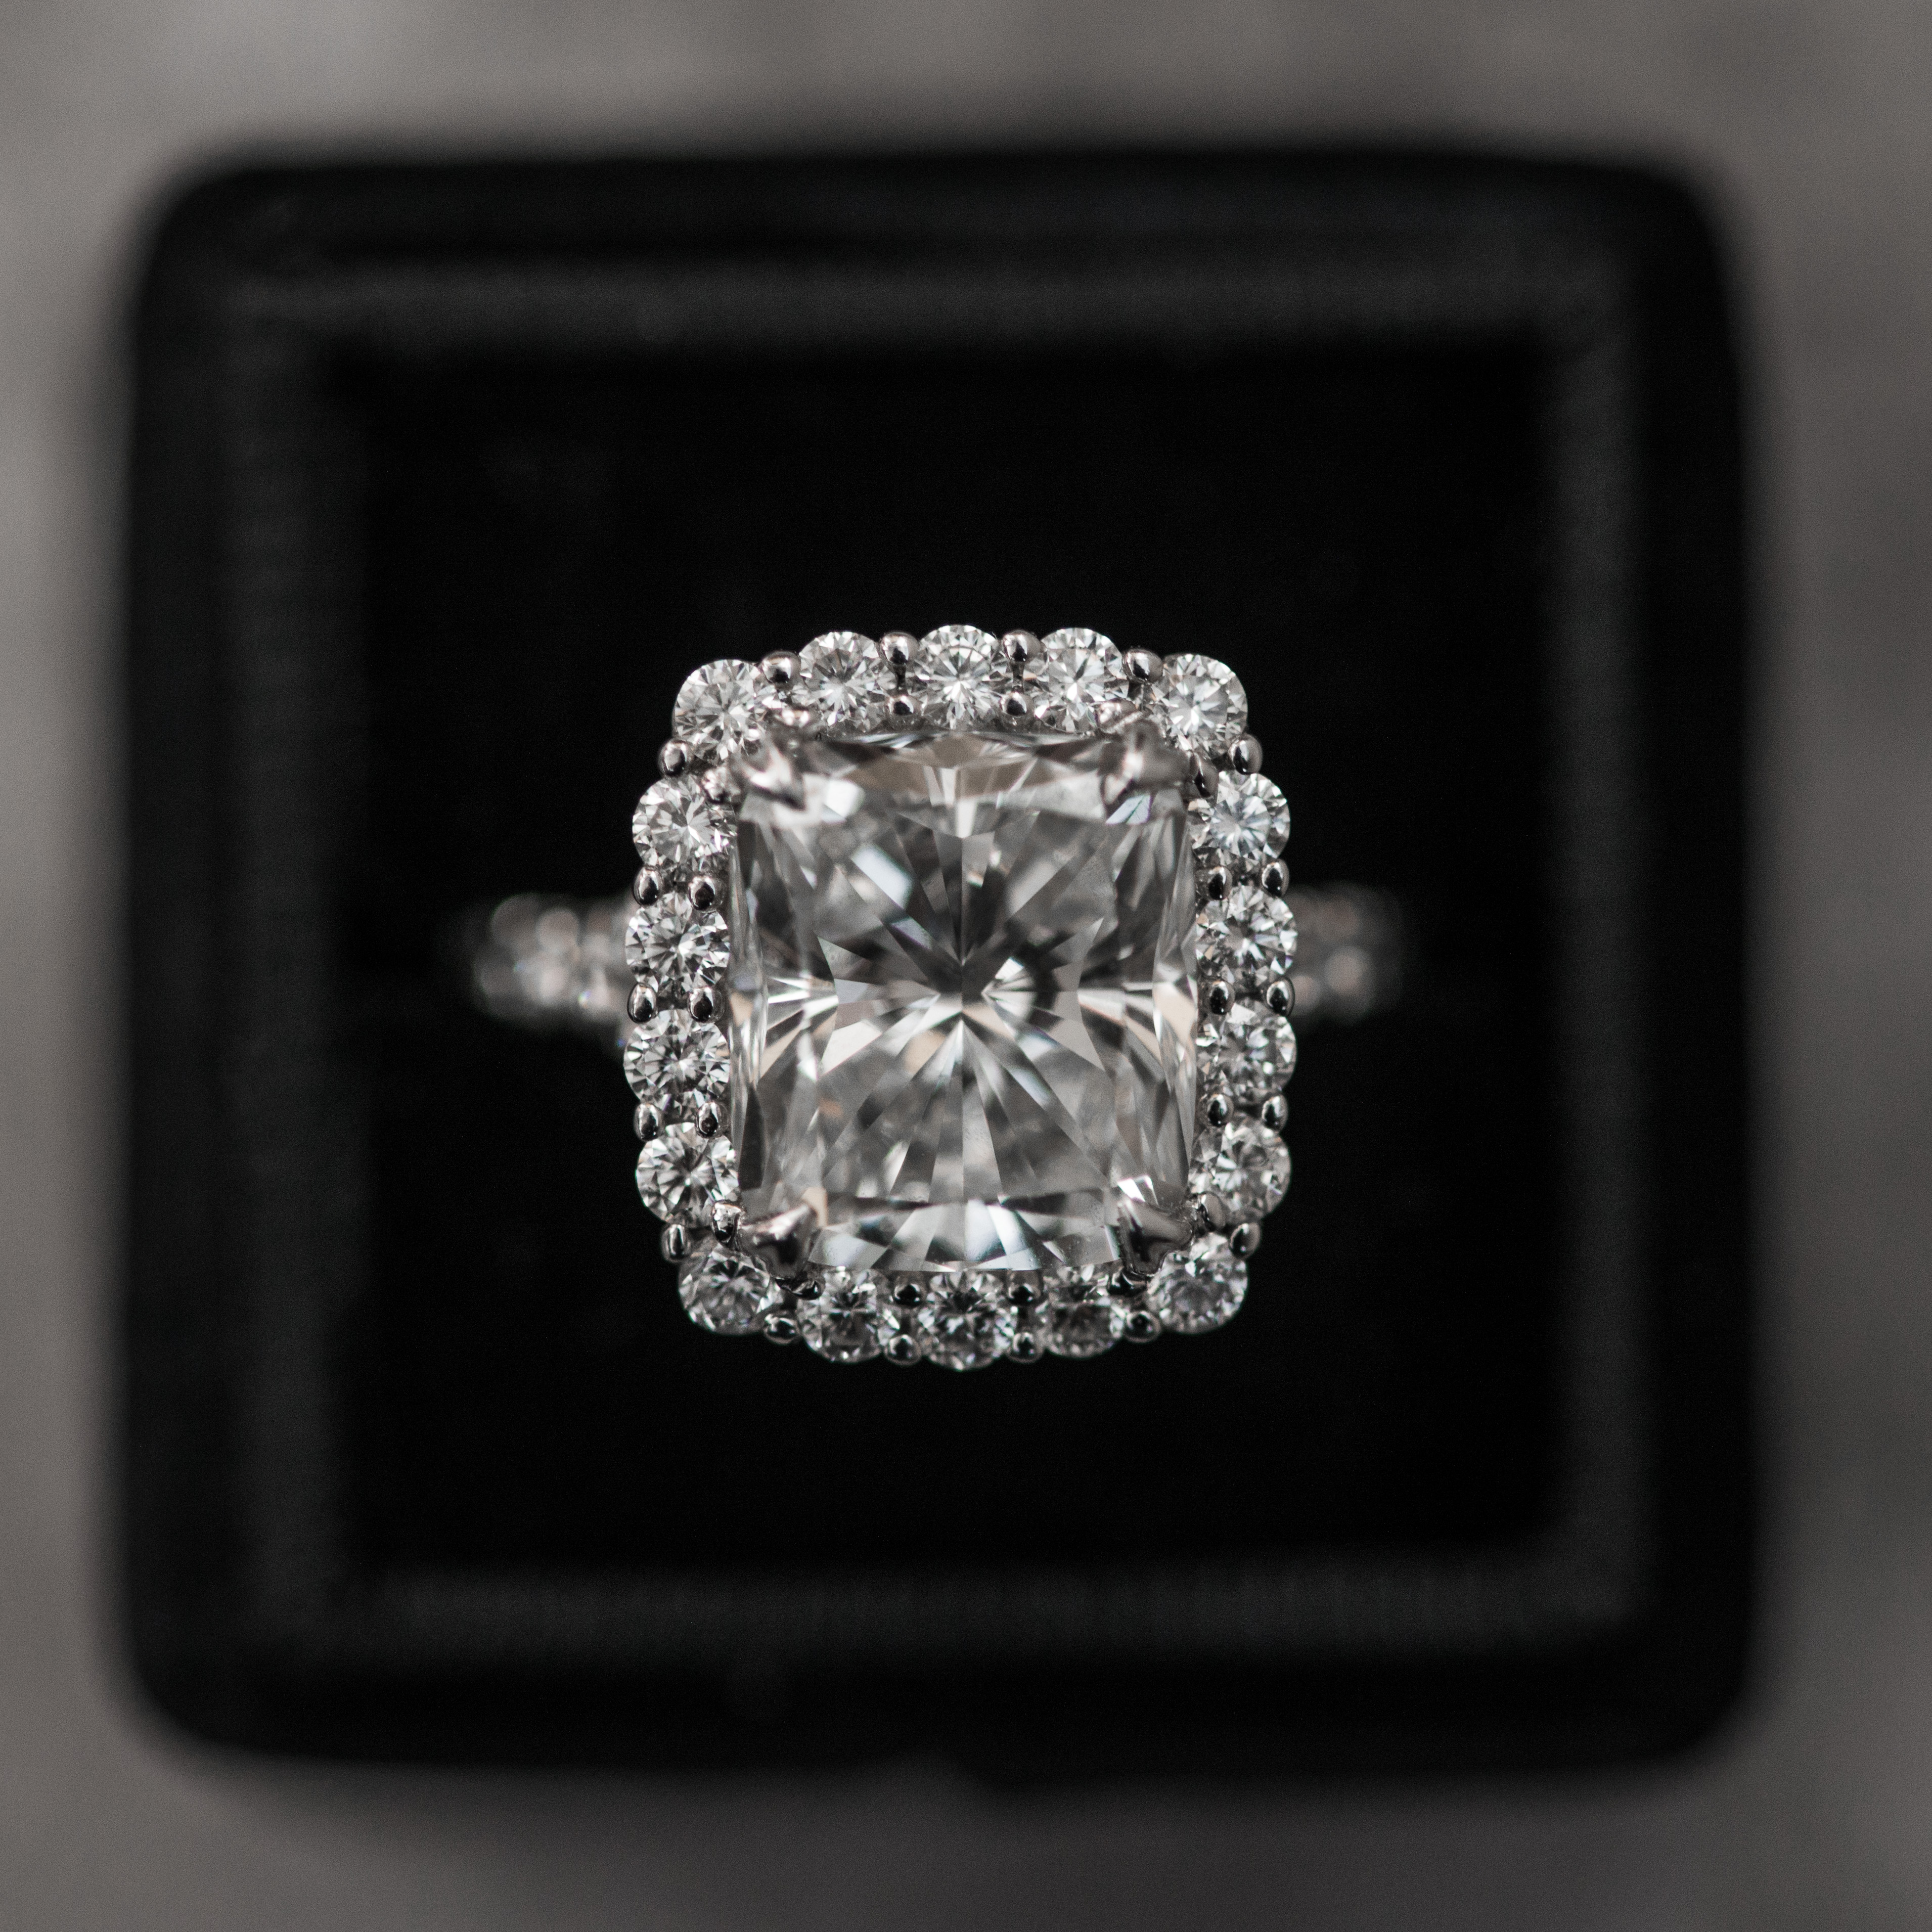 Halo Engagement Ring with a Spin? 5 Ways to Get Inspired for Your Choice